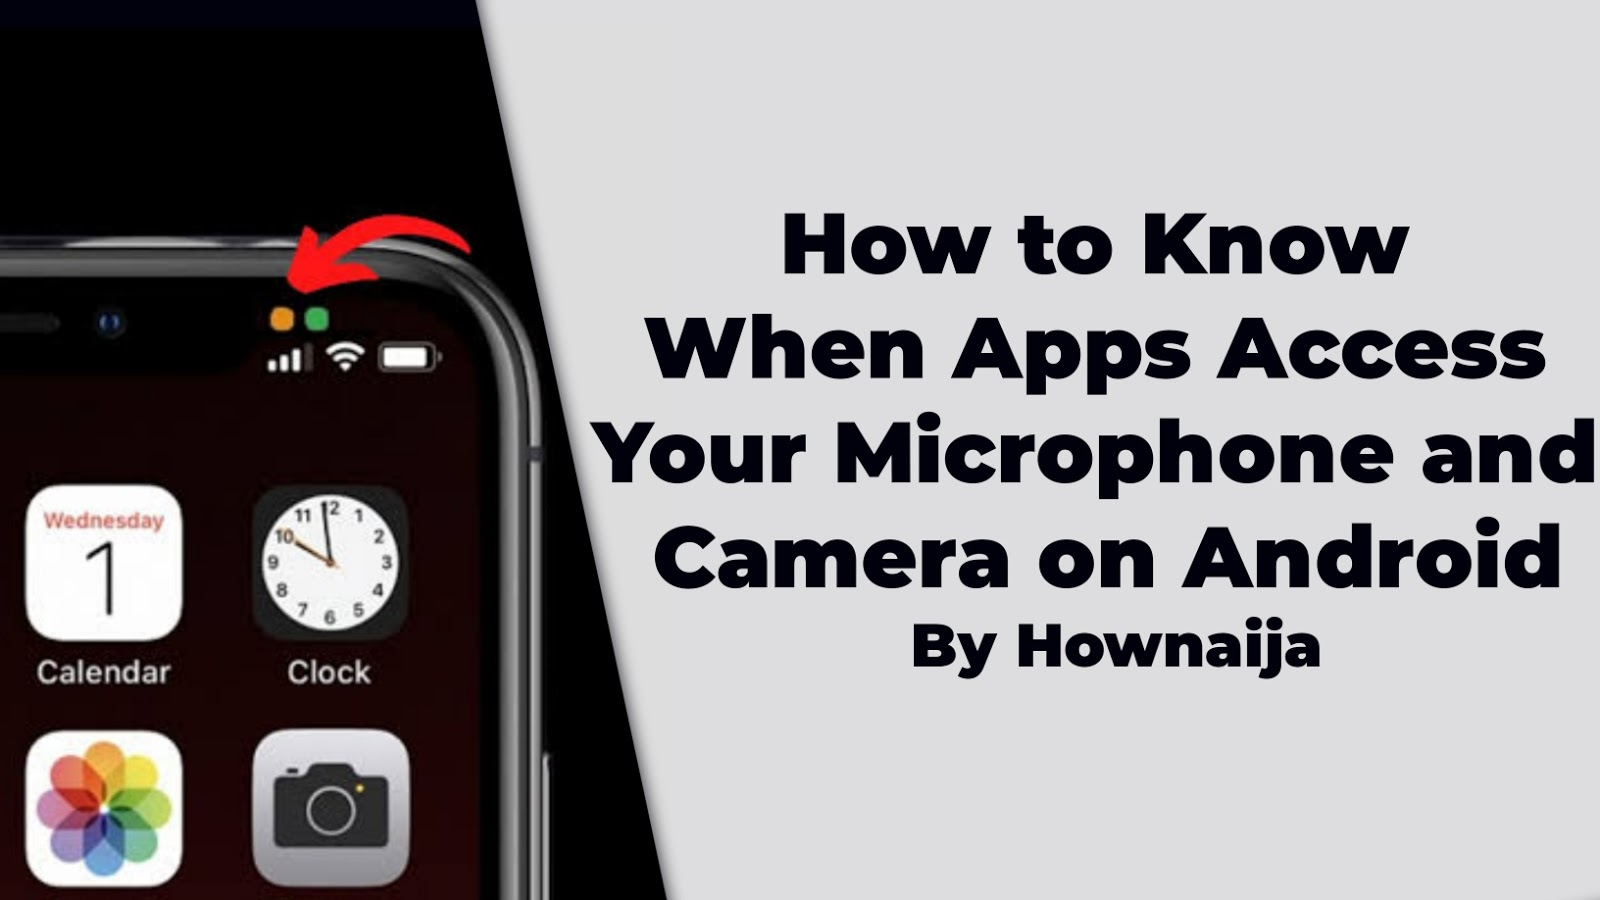 How to Know When Apps Access Your Microphone and Camera on Android